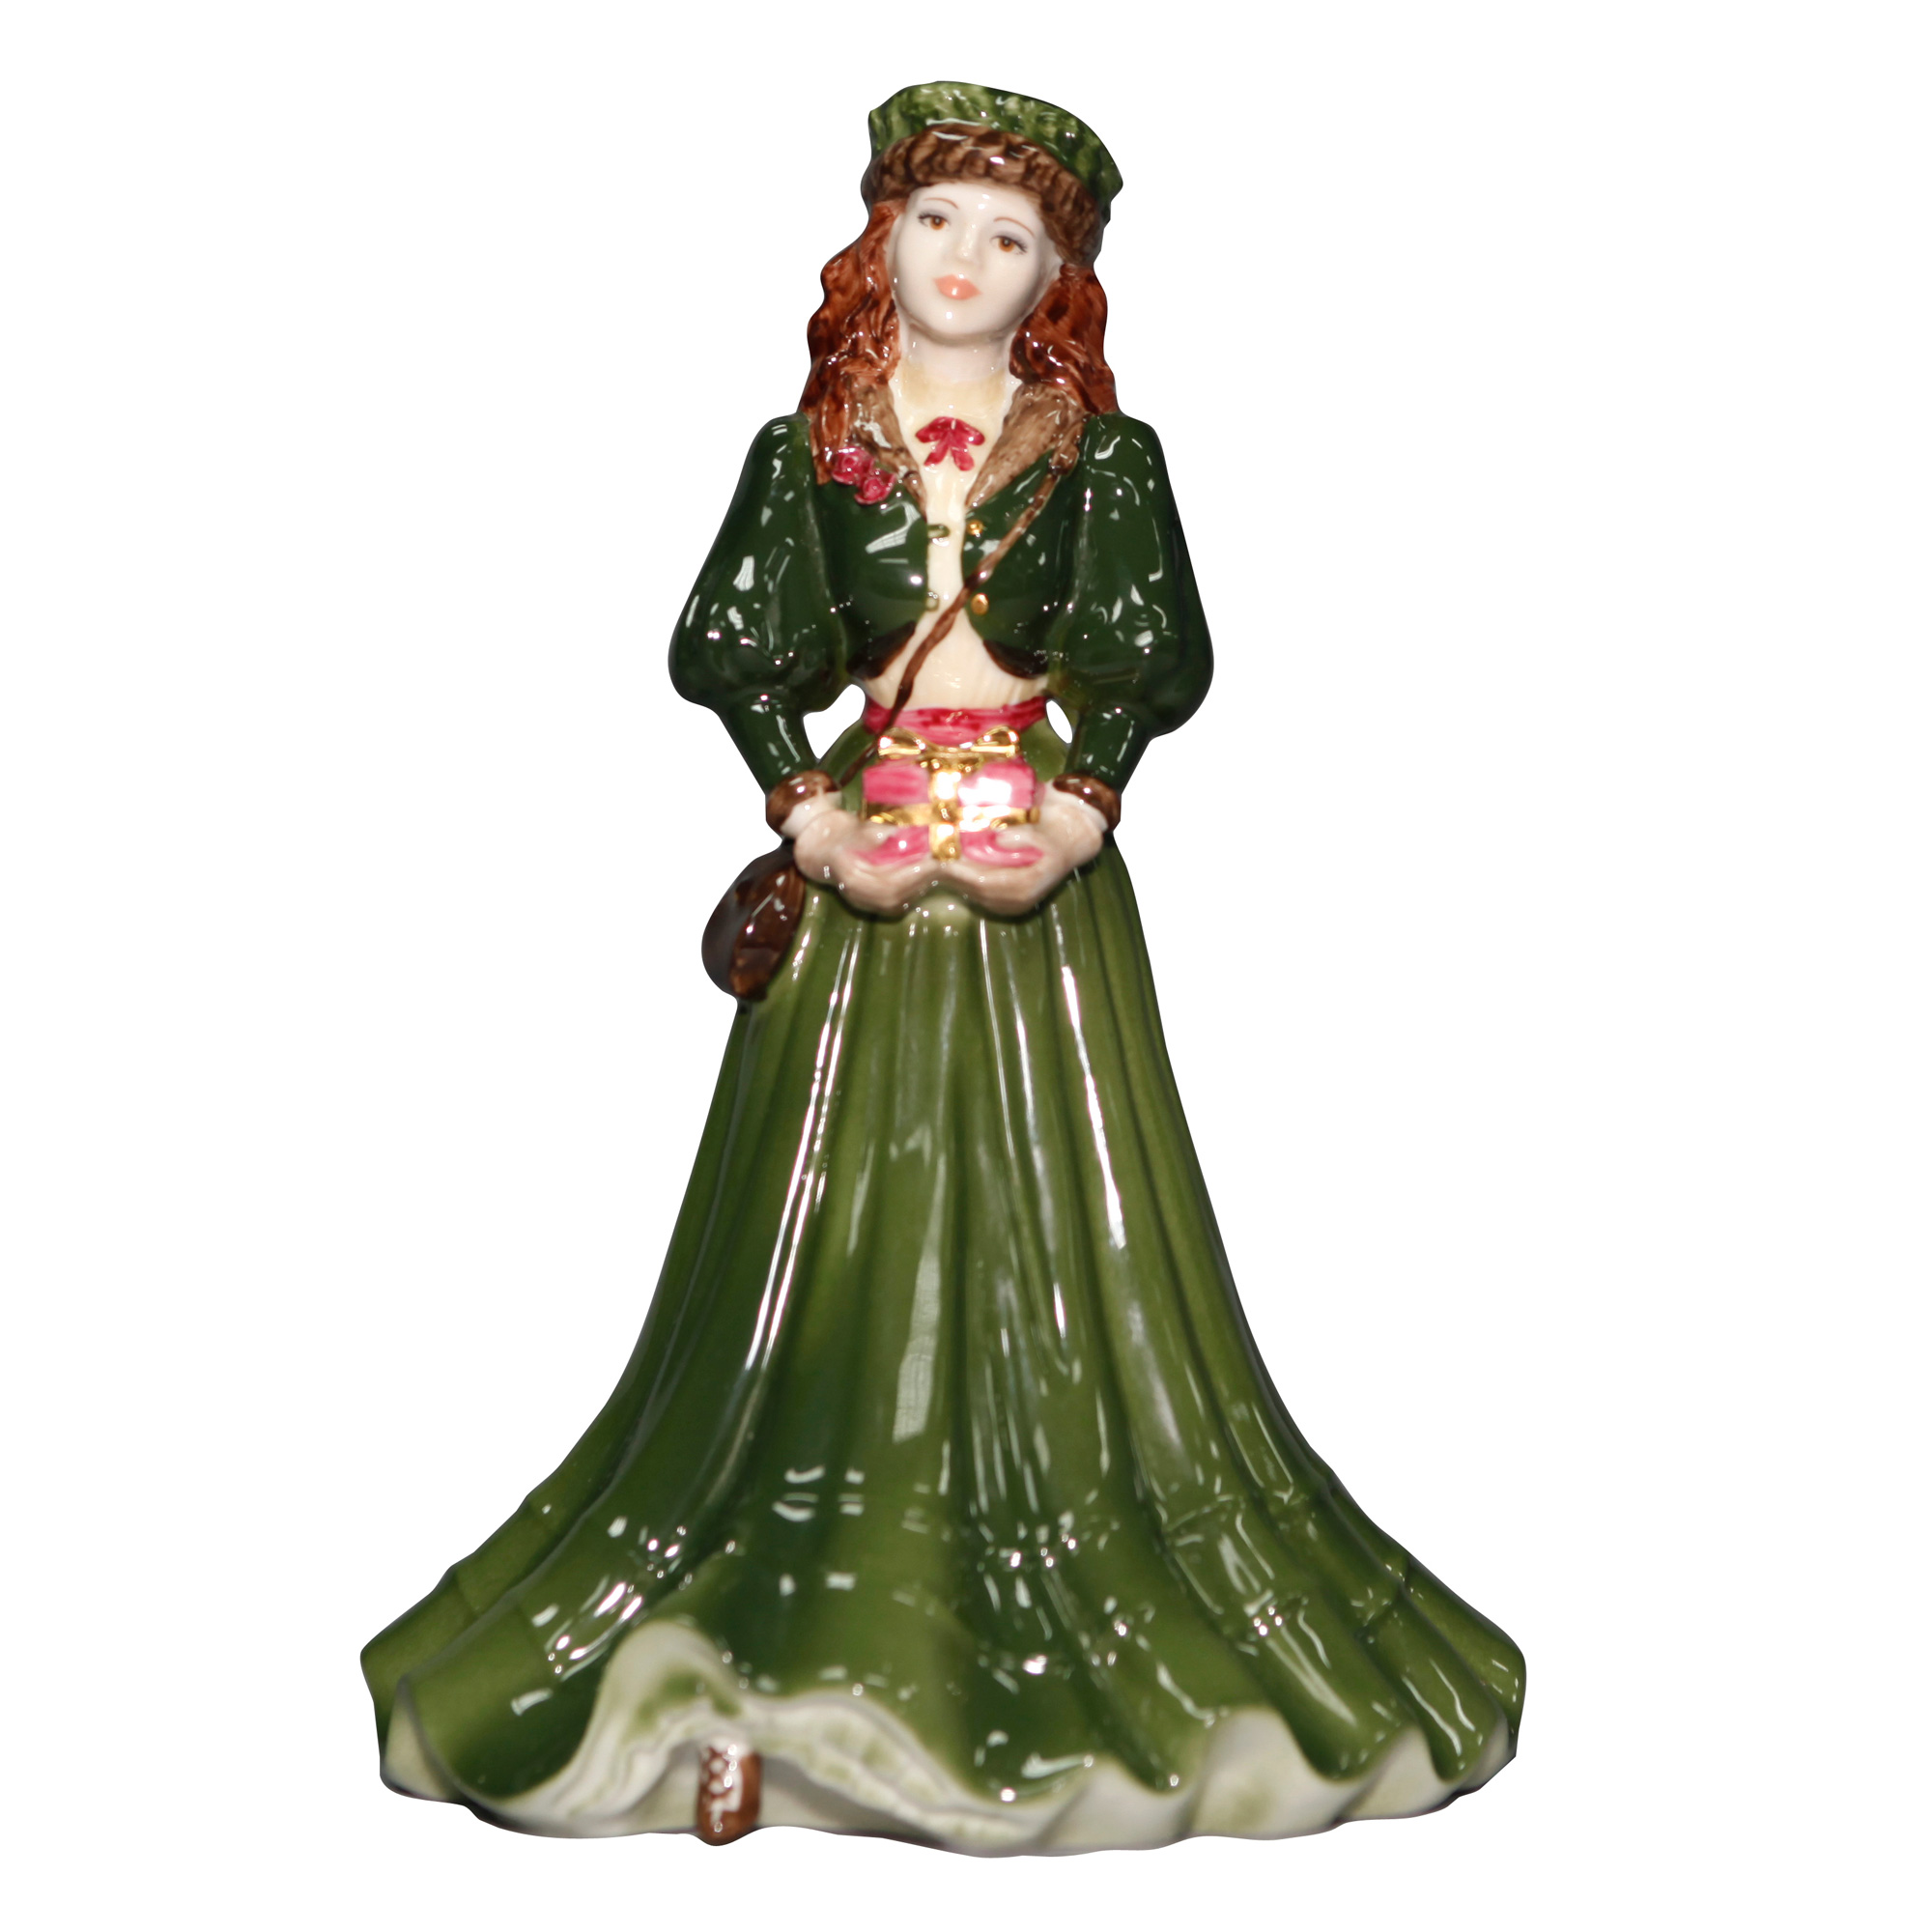 A Gift at Christmas - Coalport Figurine